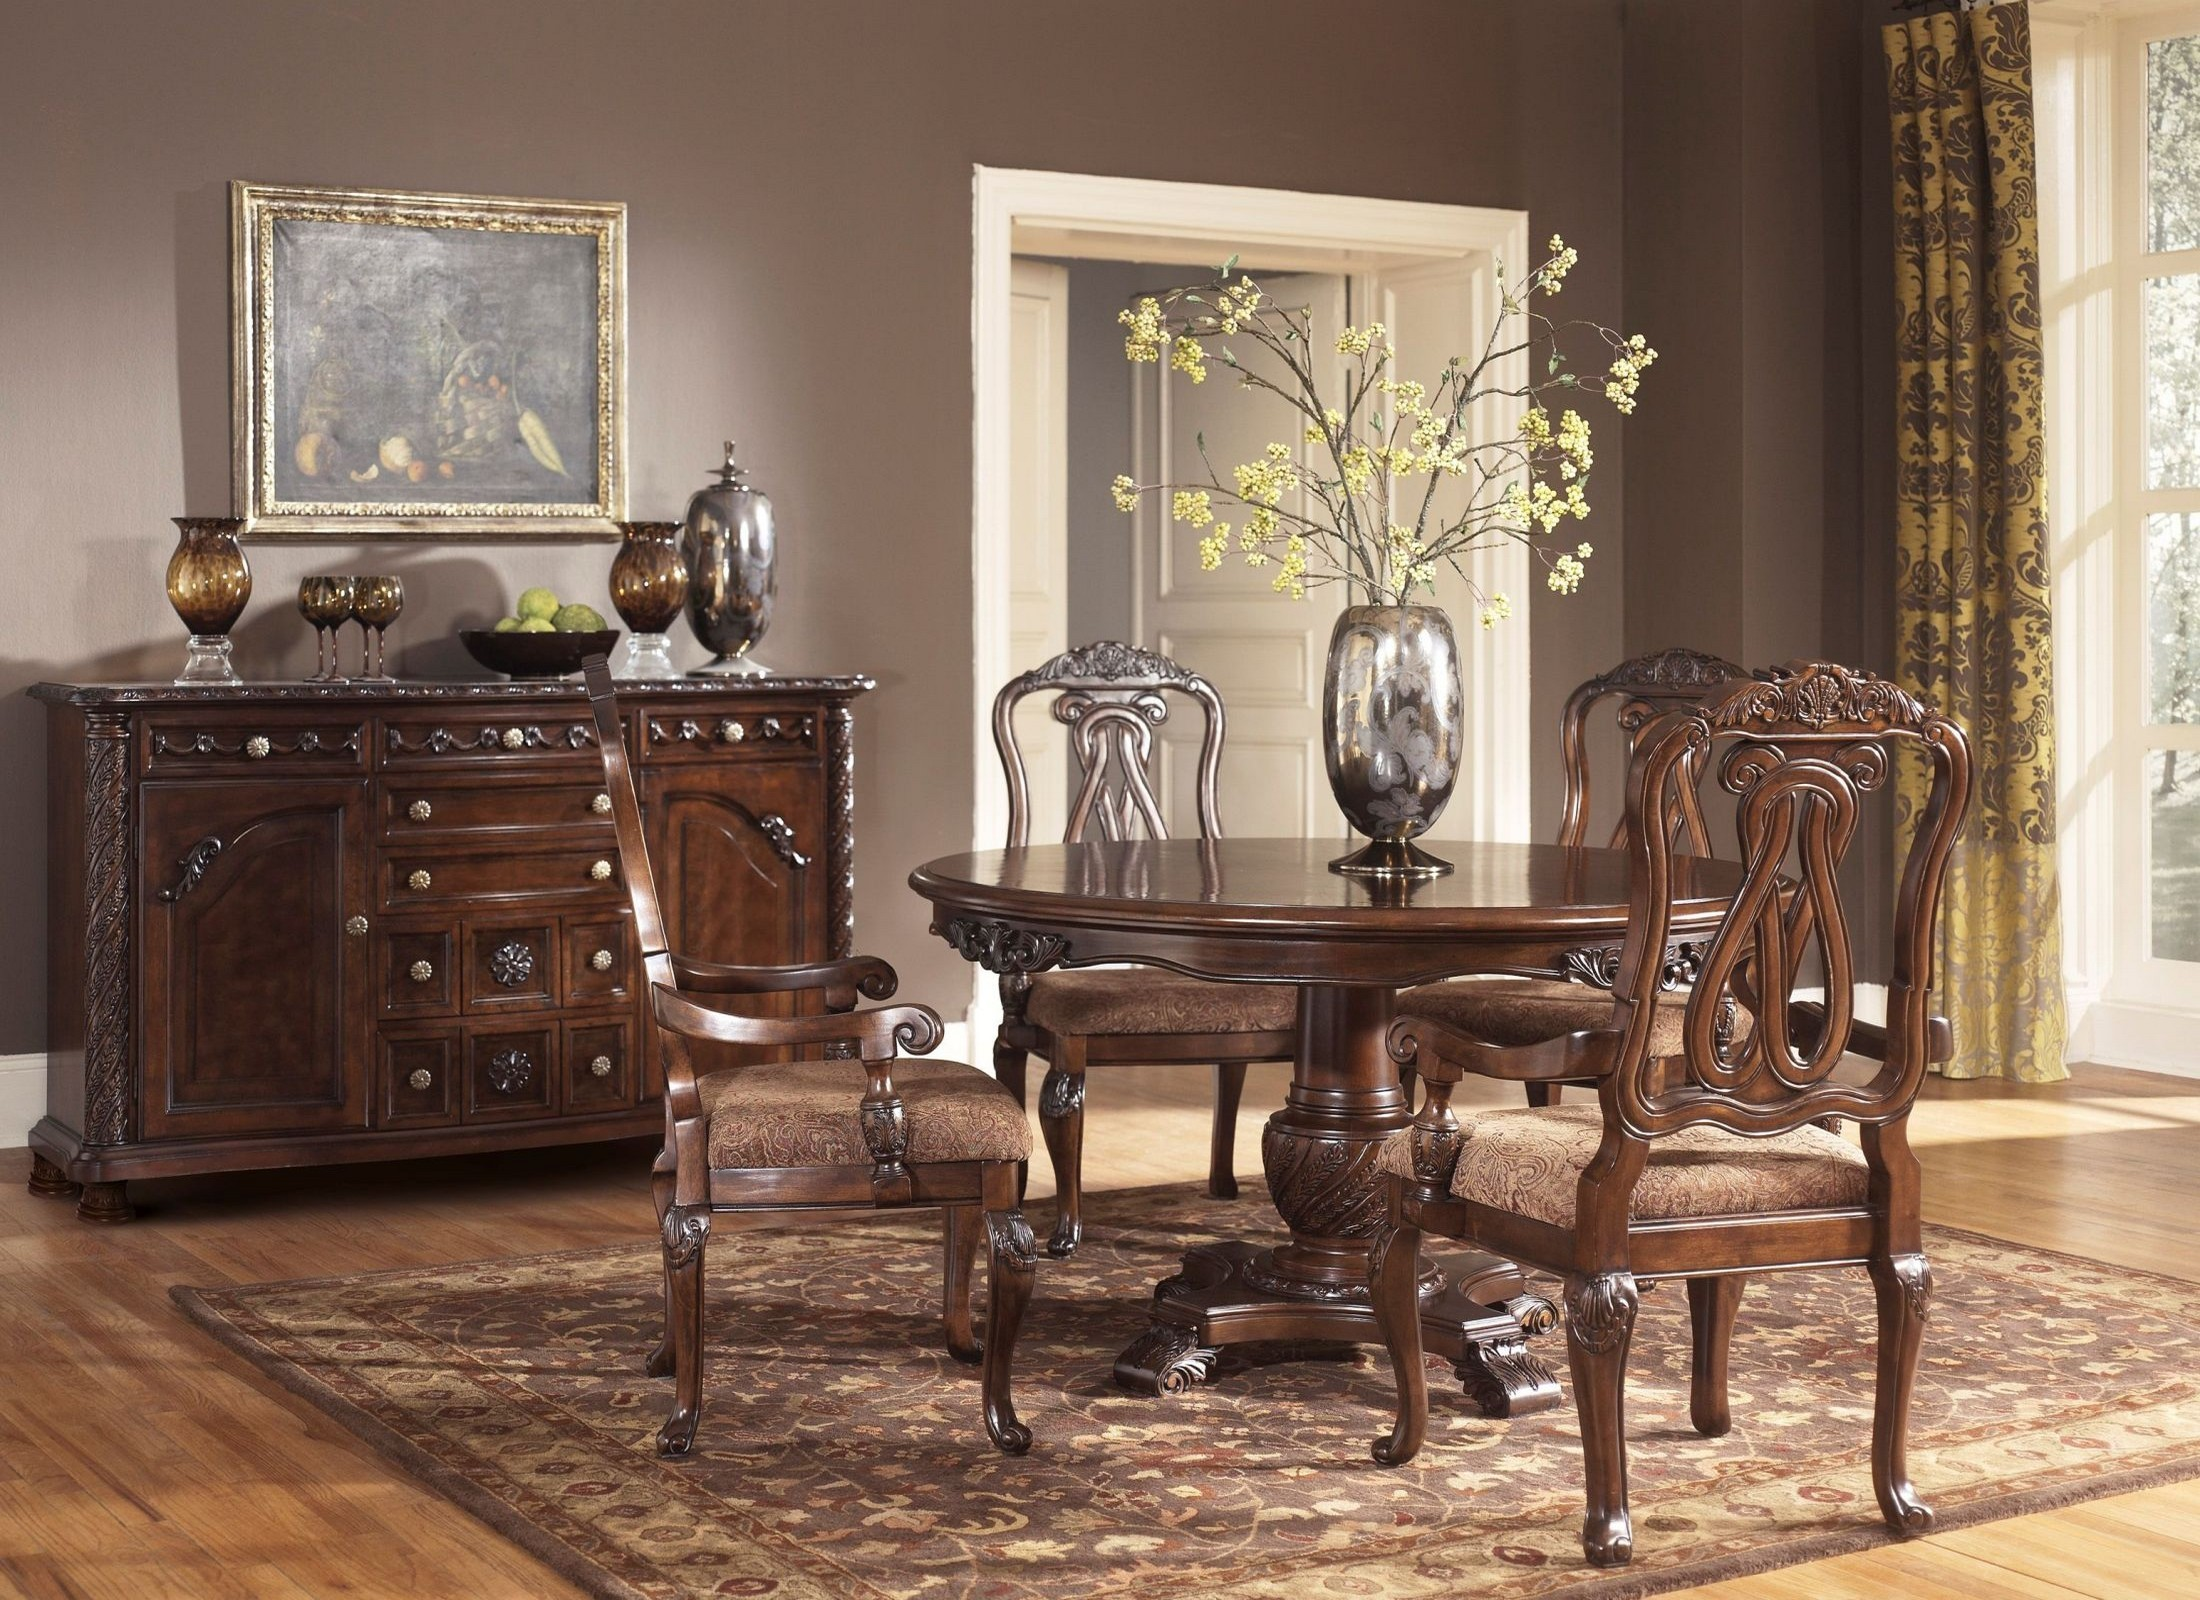 North Shore Round Pedestal Dining Room Set from Ashley  Coleman Furniture